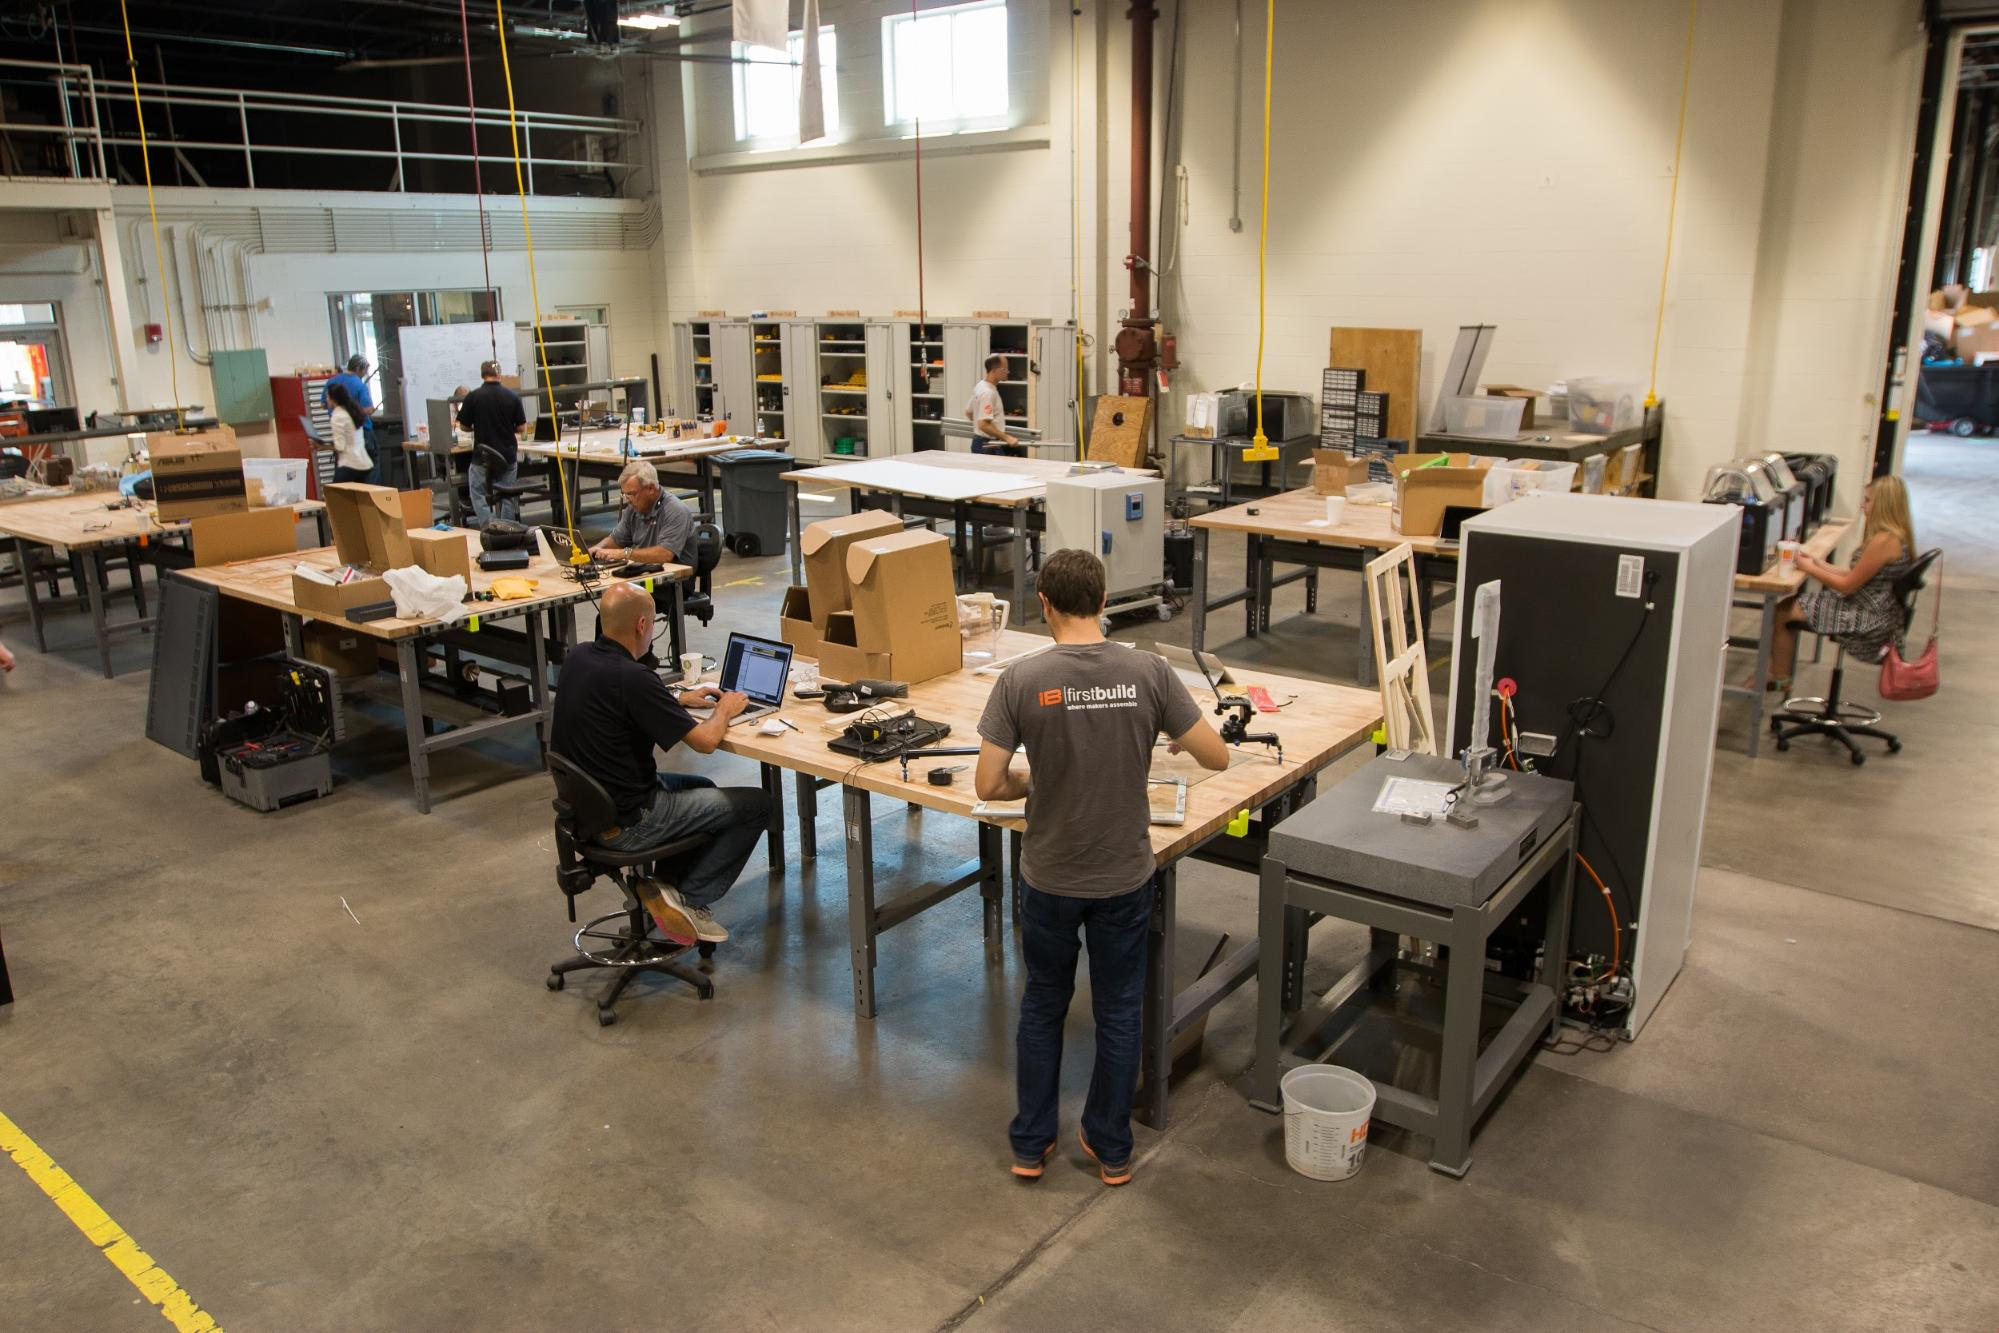 FirstBuild, backed by GE Appliances, runs a microfactory that brings ideas from their online community to life.